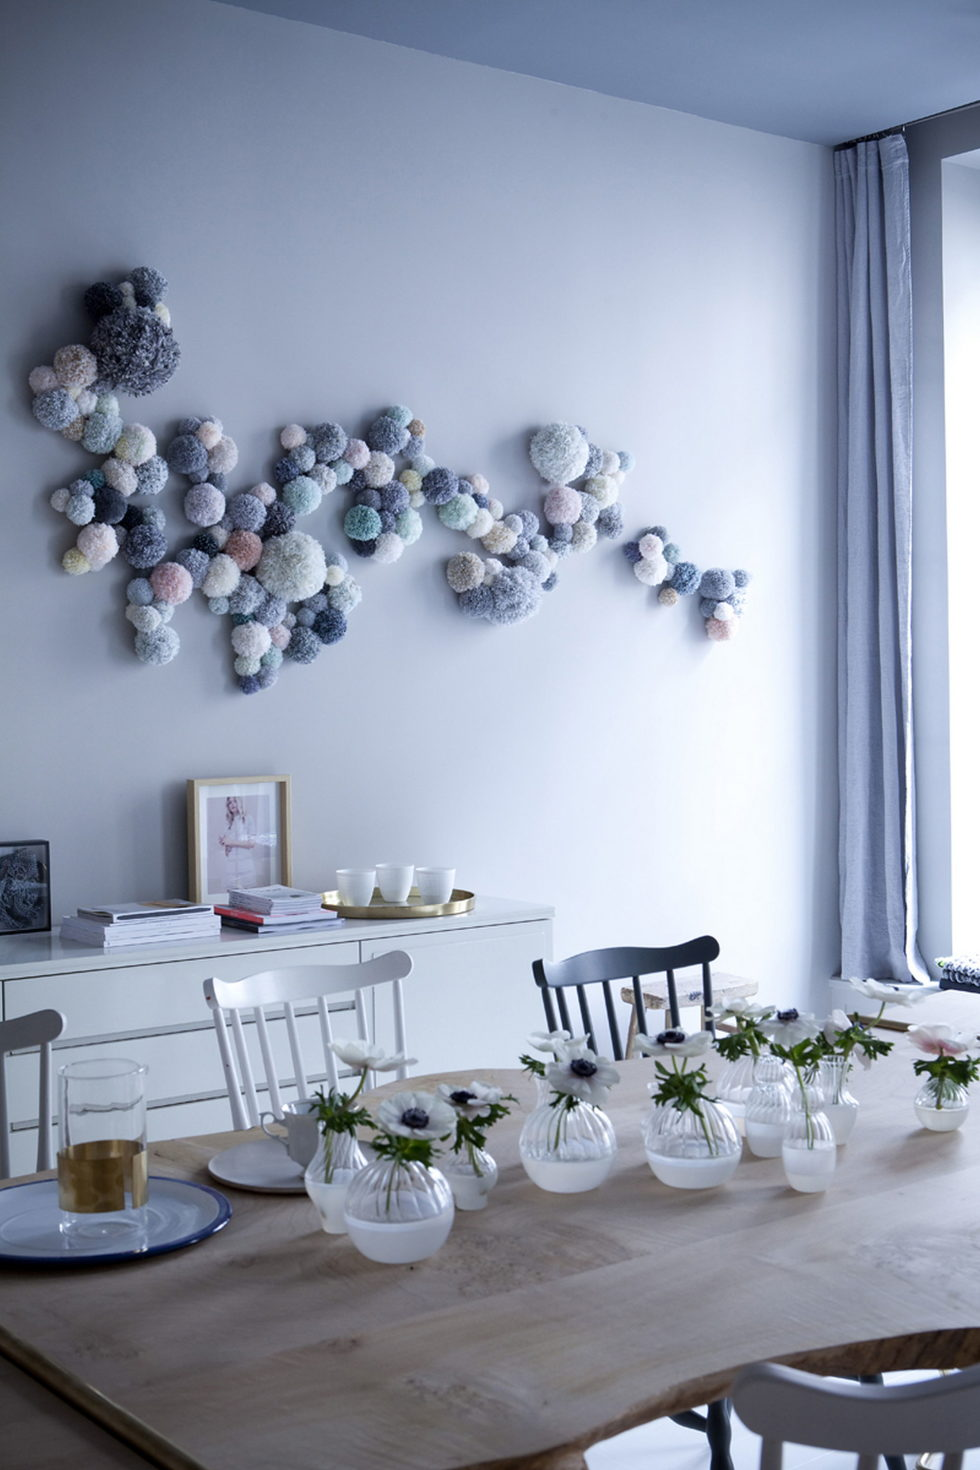 chez-marie-sixtine-the-apartment-for-guests-in-marie-sixtine-store-28